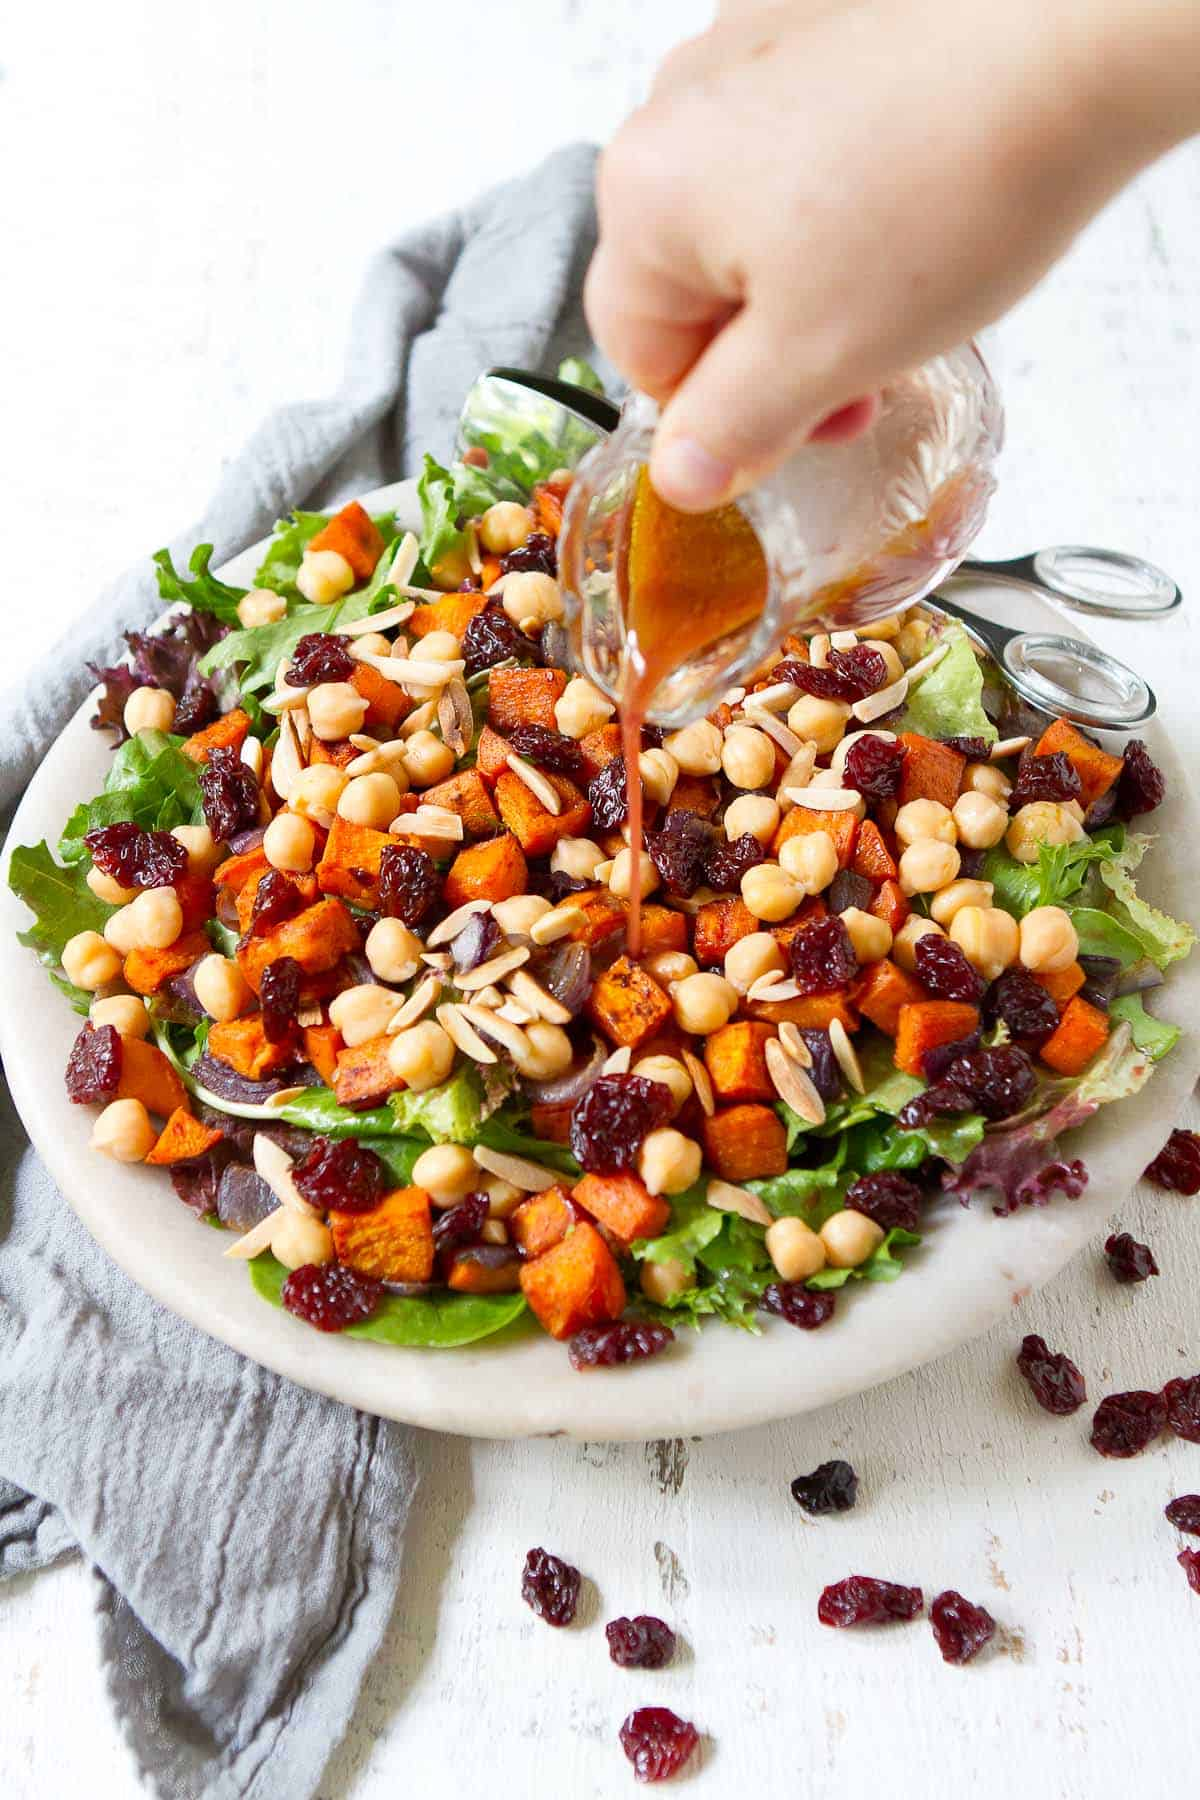 Pouring dressing over salad with sweet potato, tart cherries, greens and chickpeas.